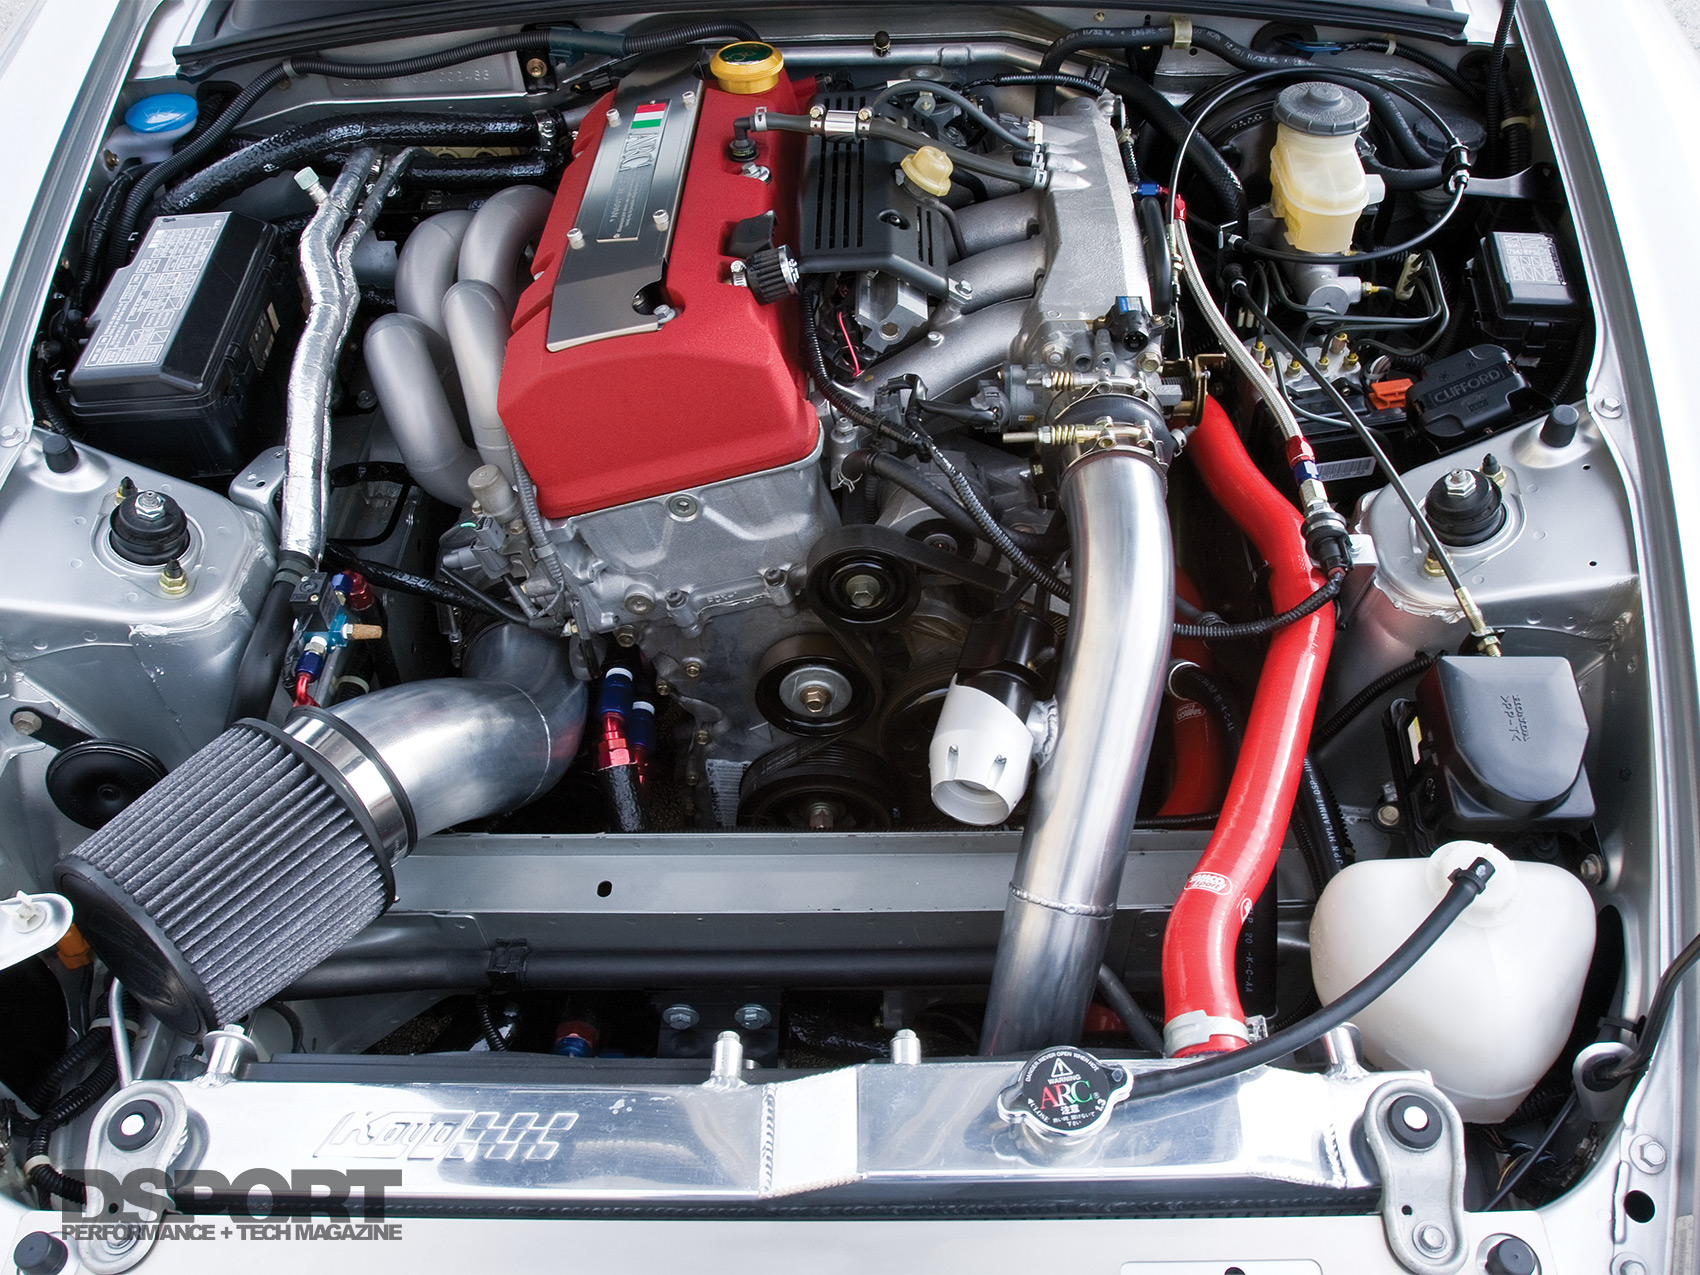 hight resolution of the f20c relies on a full race turbo kit to generate force induced horsepower